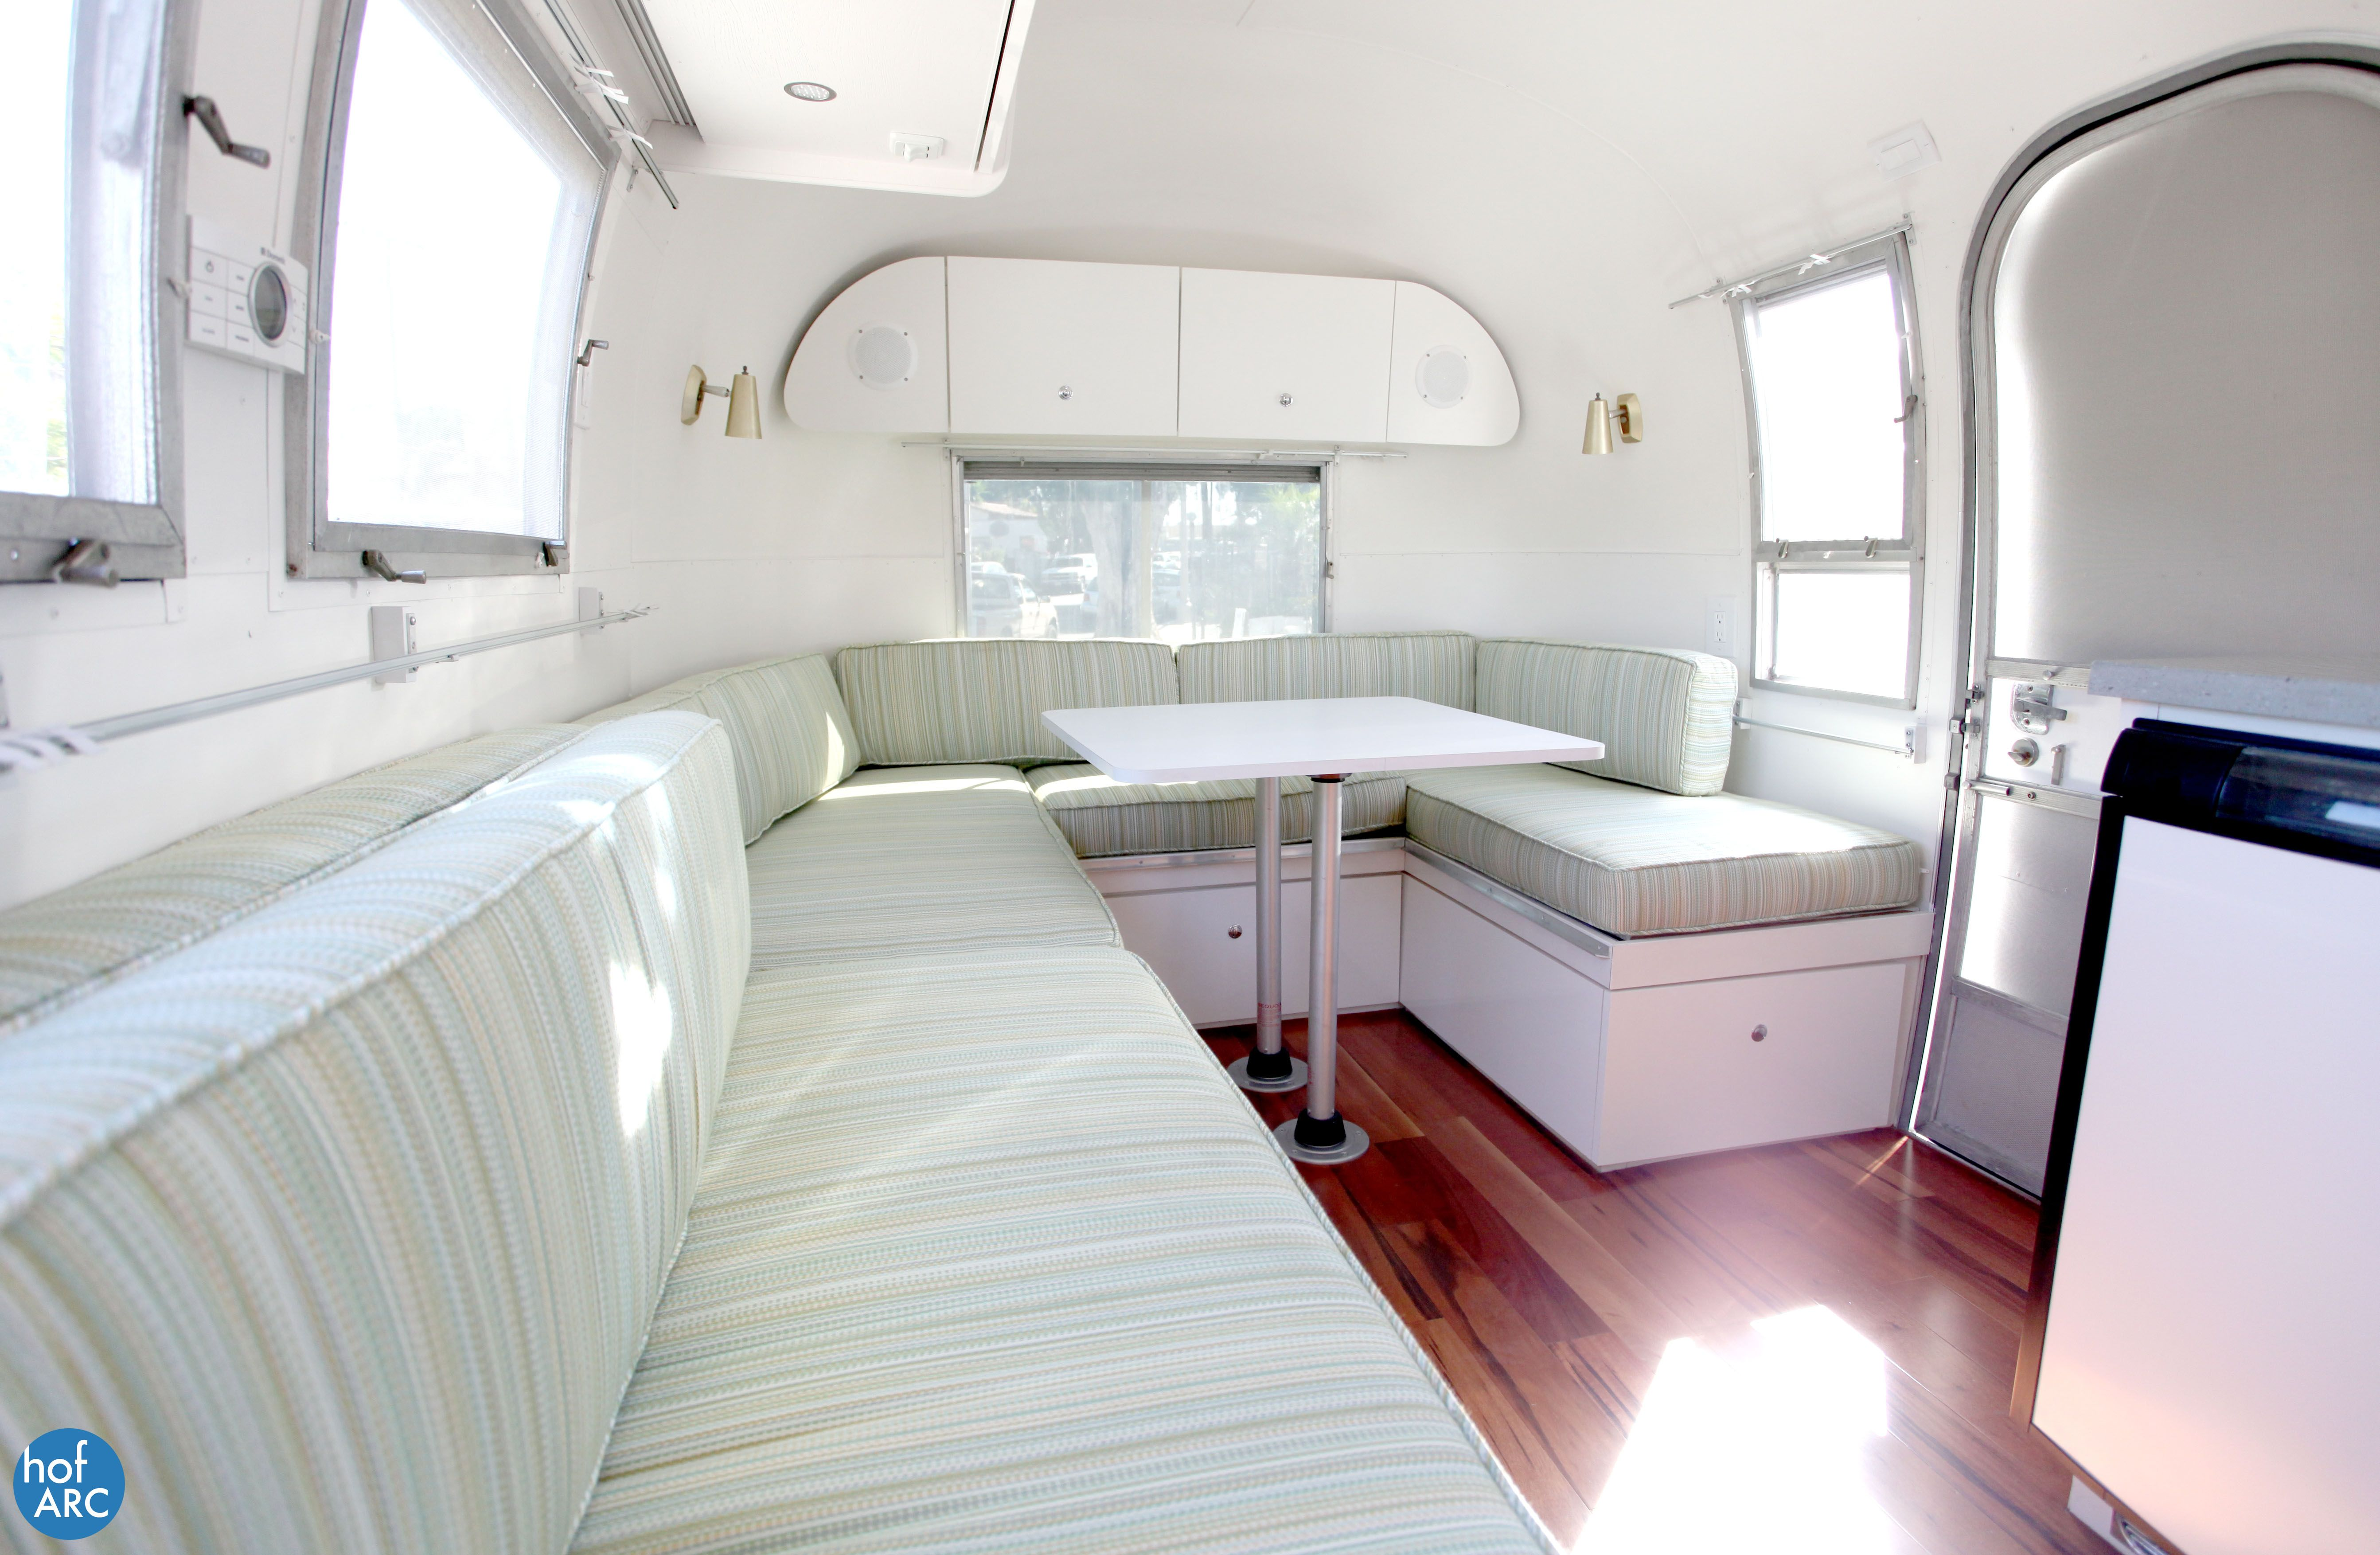 1967 Airstream Globetrotter Alice renovated by HofArc. | Airstreams ...